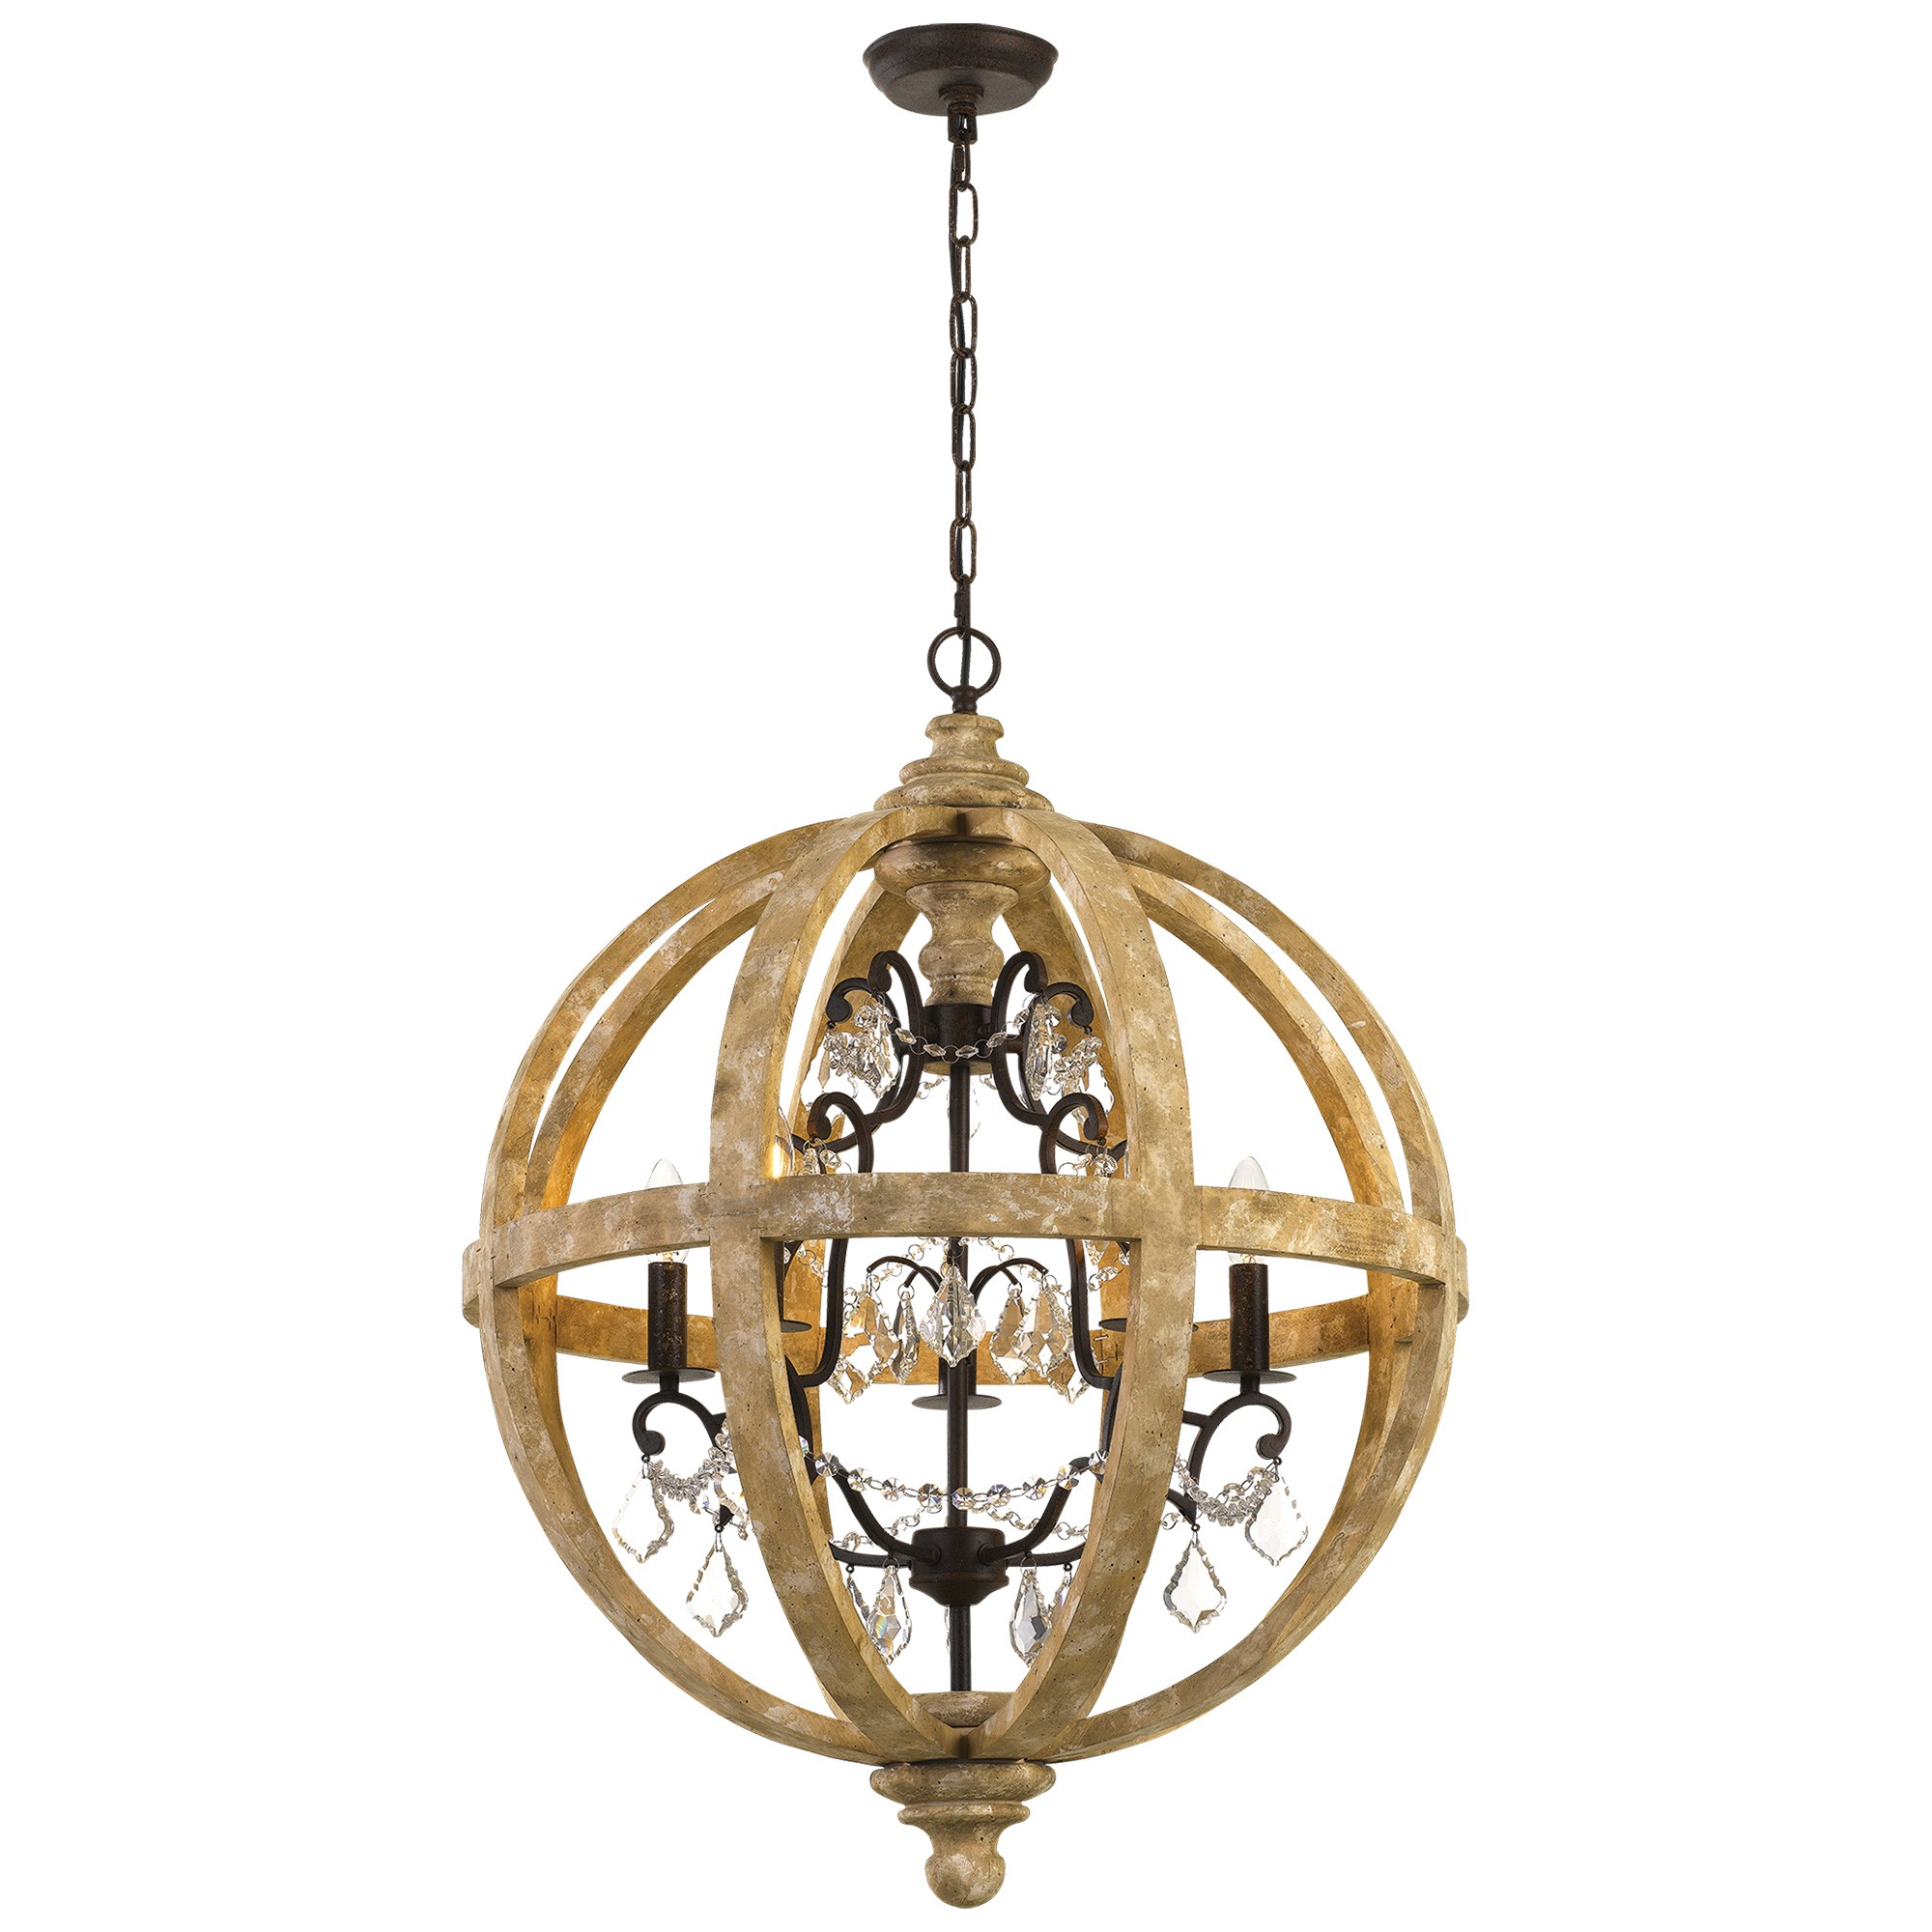 Florin Wood & Iron Chandelier / Pendant Light, Small